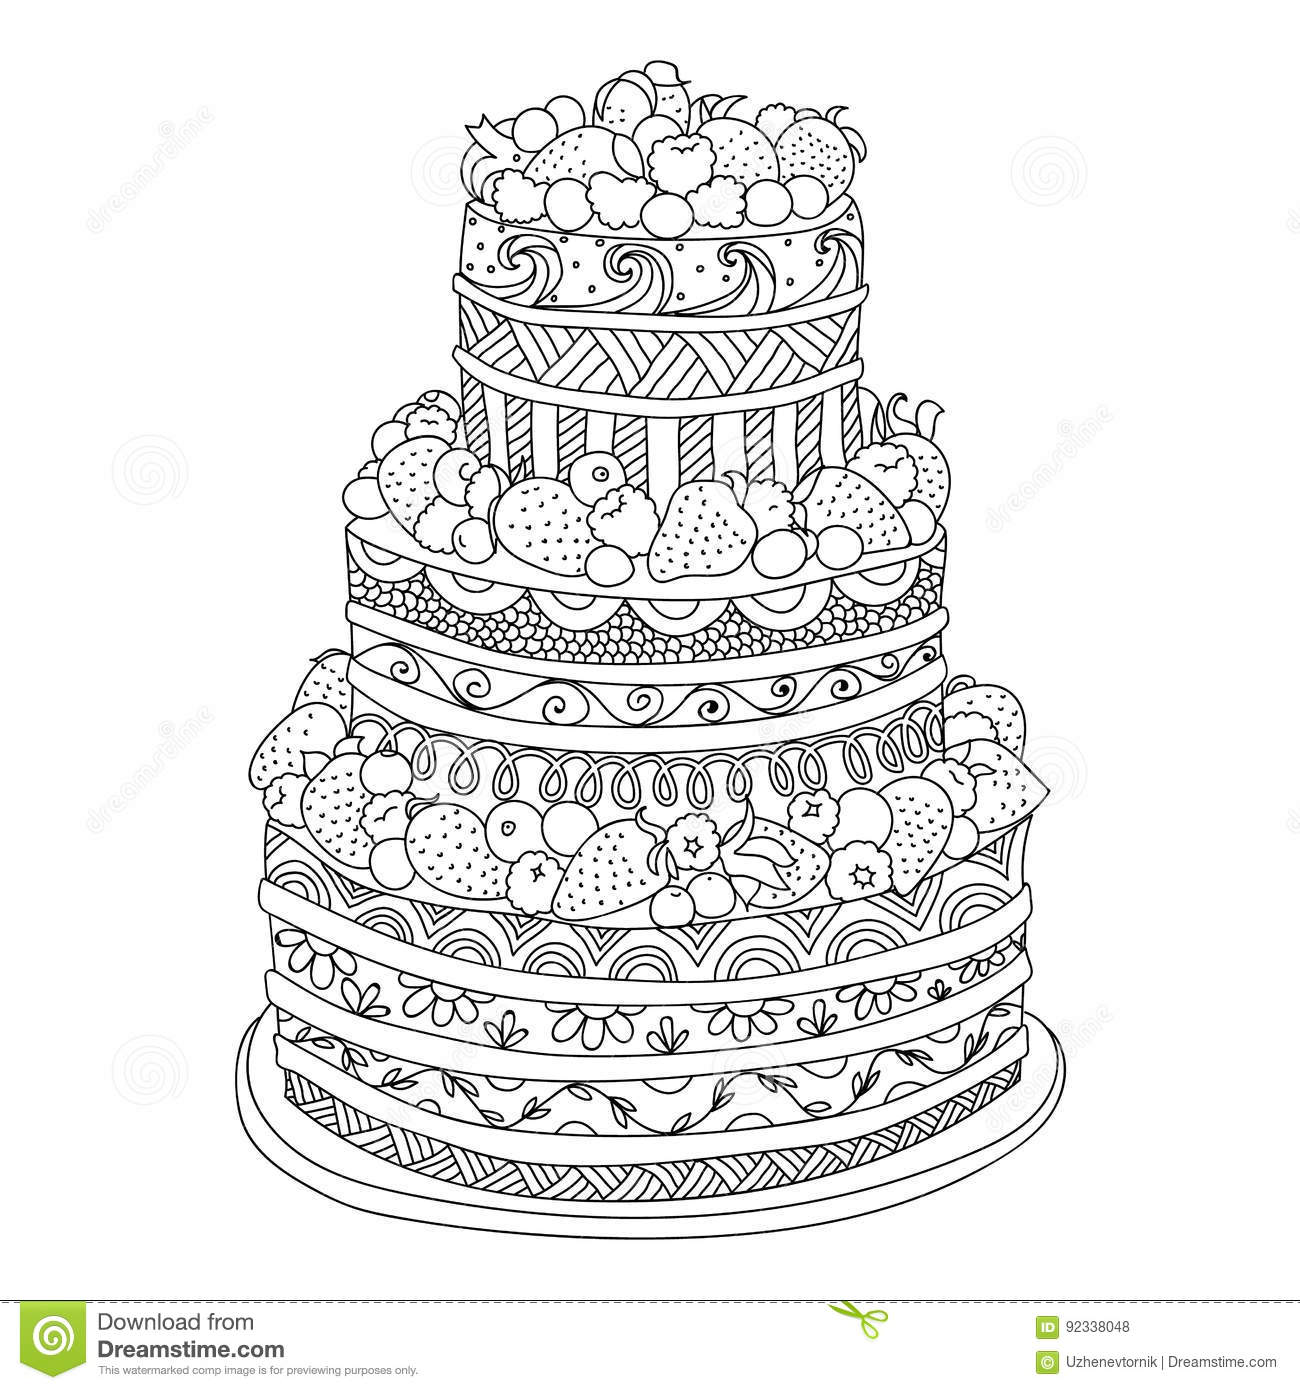 Cake for coloring book stock vector. Illustration of decorative ...